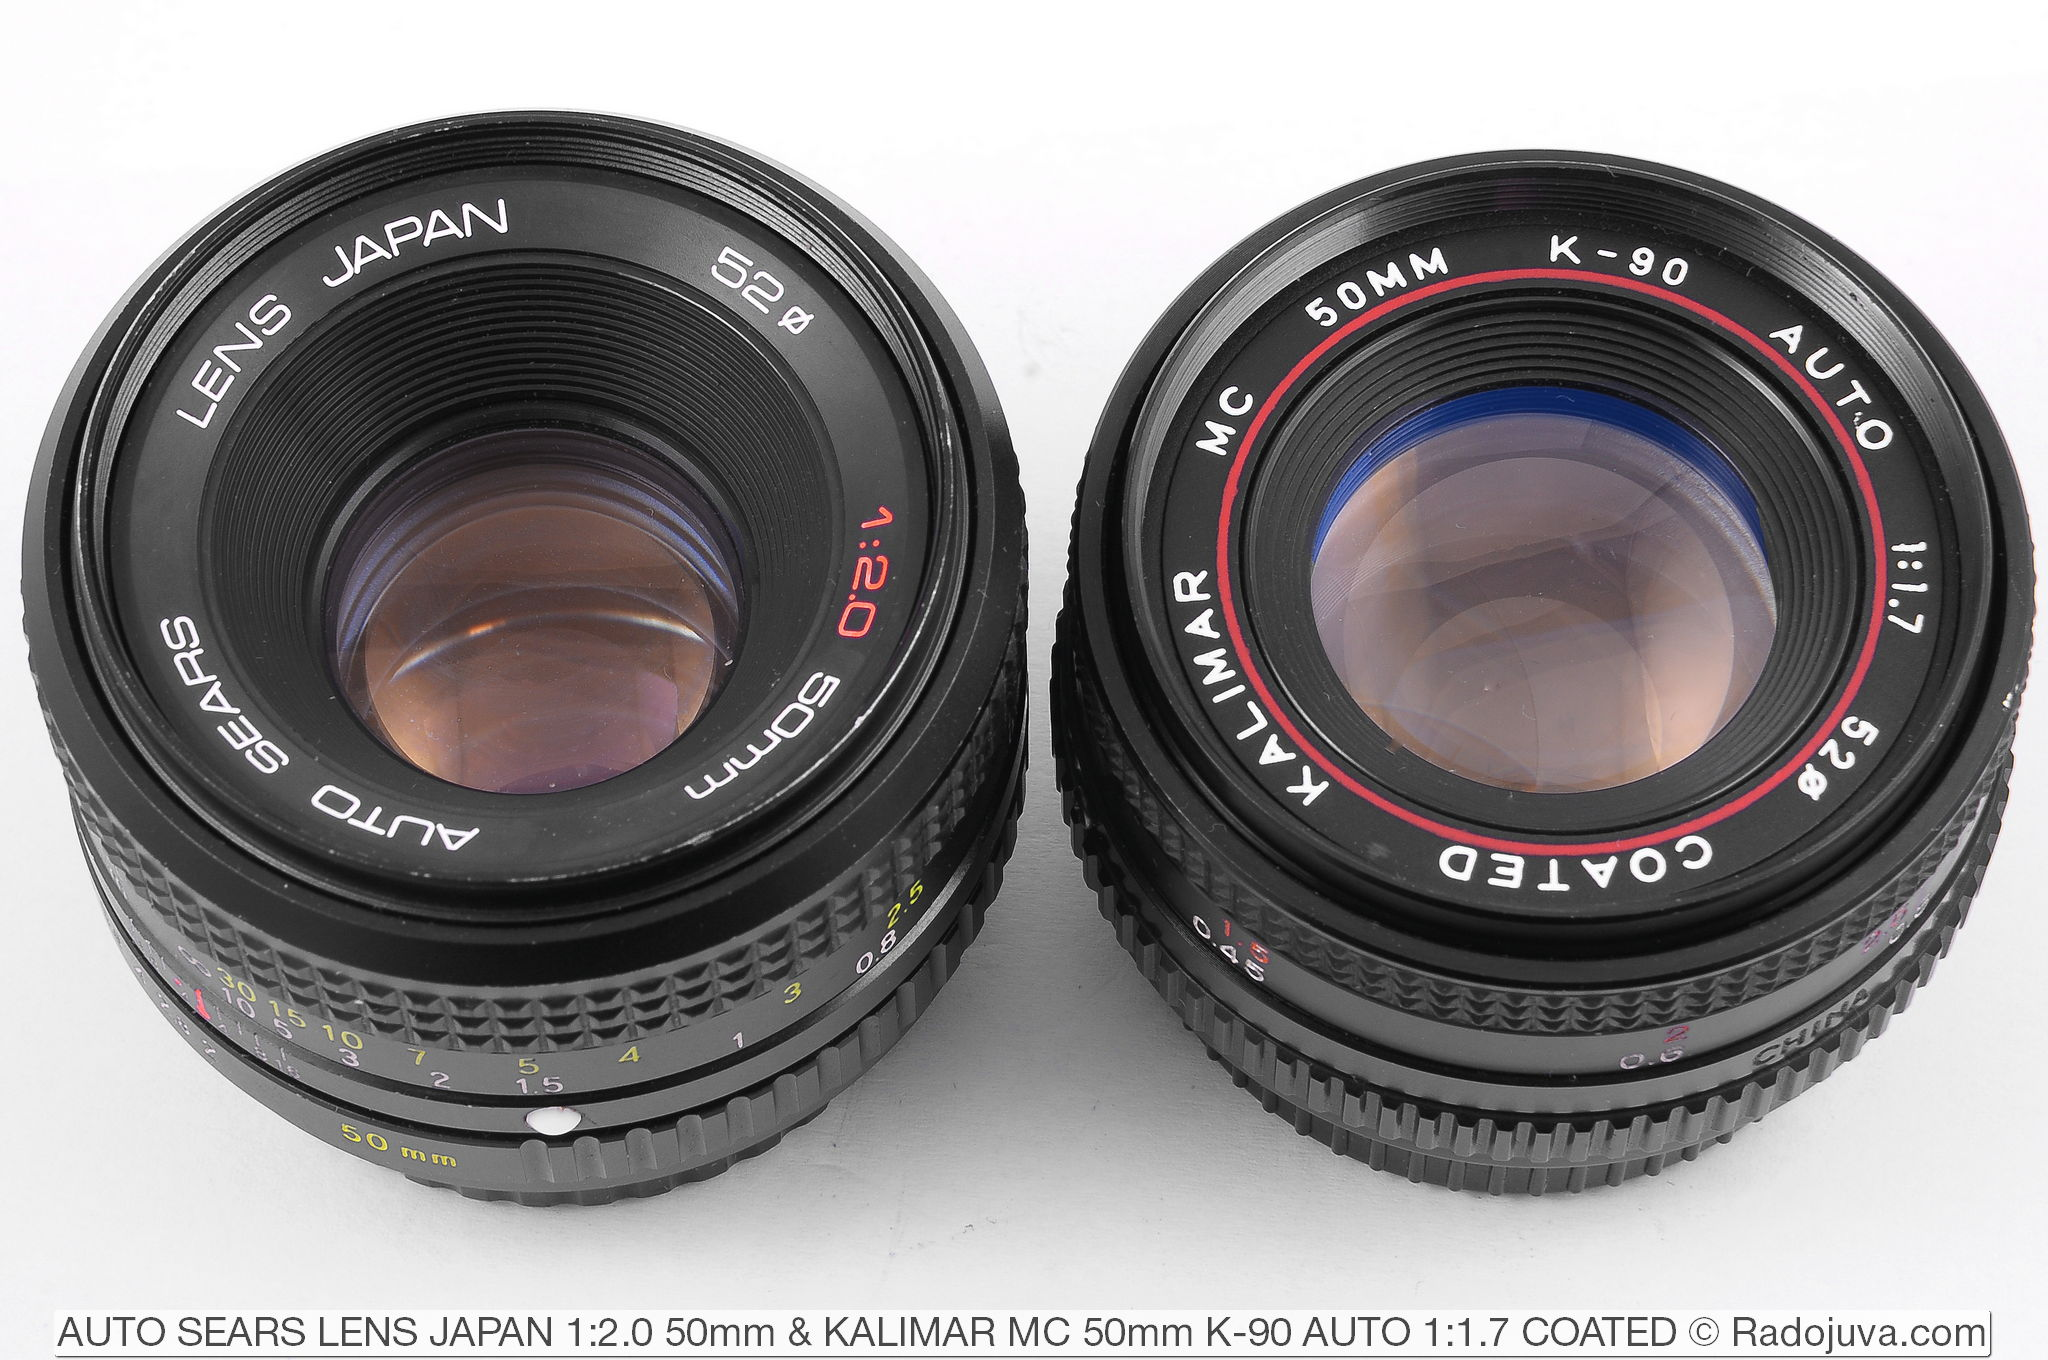 AUTO SEARS LENS JAPAN 1:2.0 50mm and KALIMAR MC 50mm K-90 AUTO 1:1.7 COATED